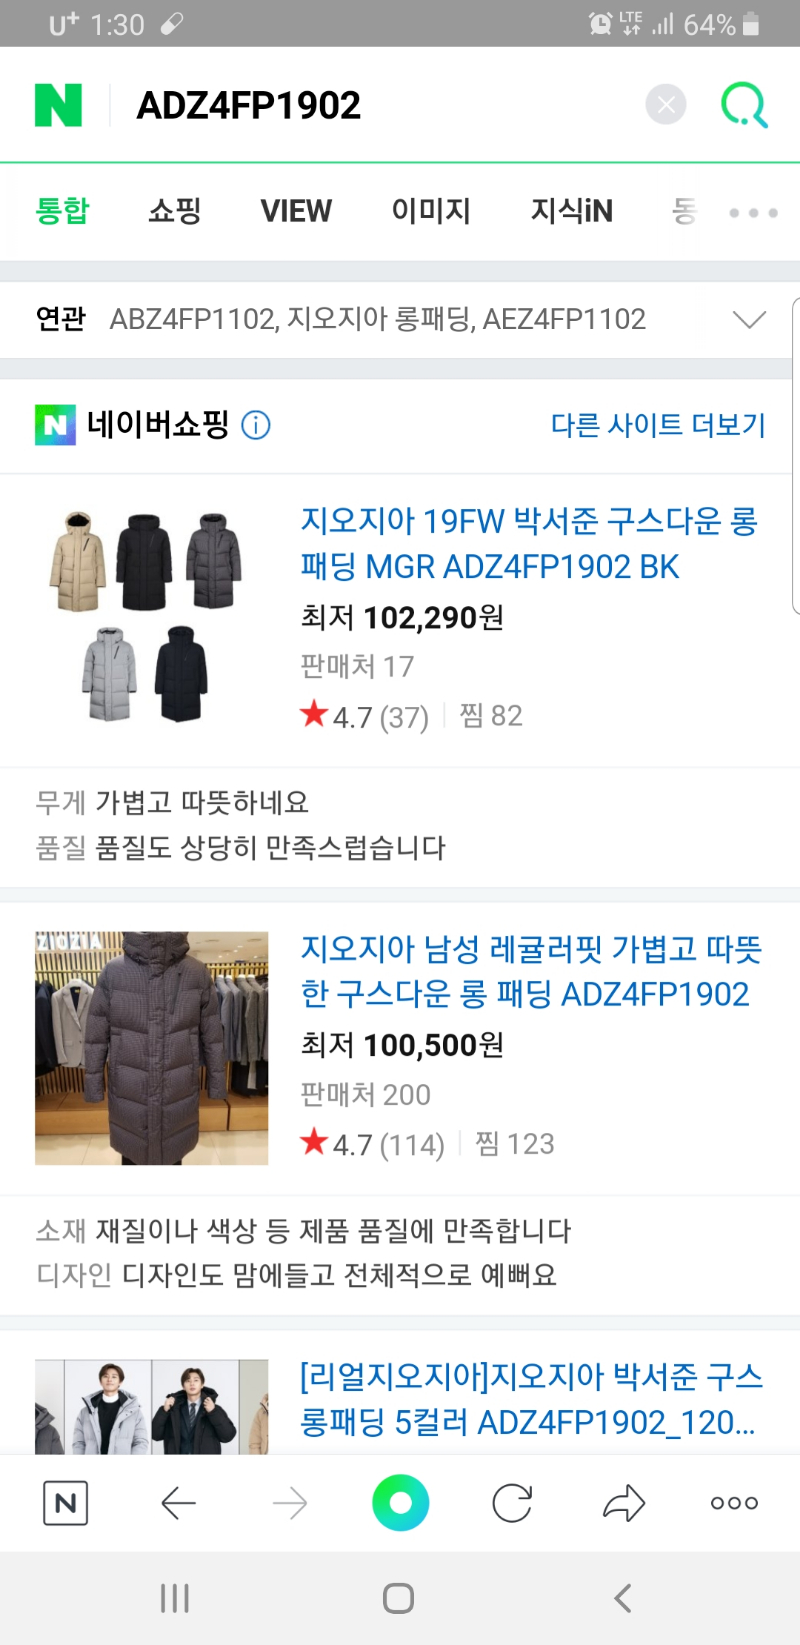 Screenshot_20191205-133026_NAVER.jpg